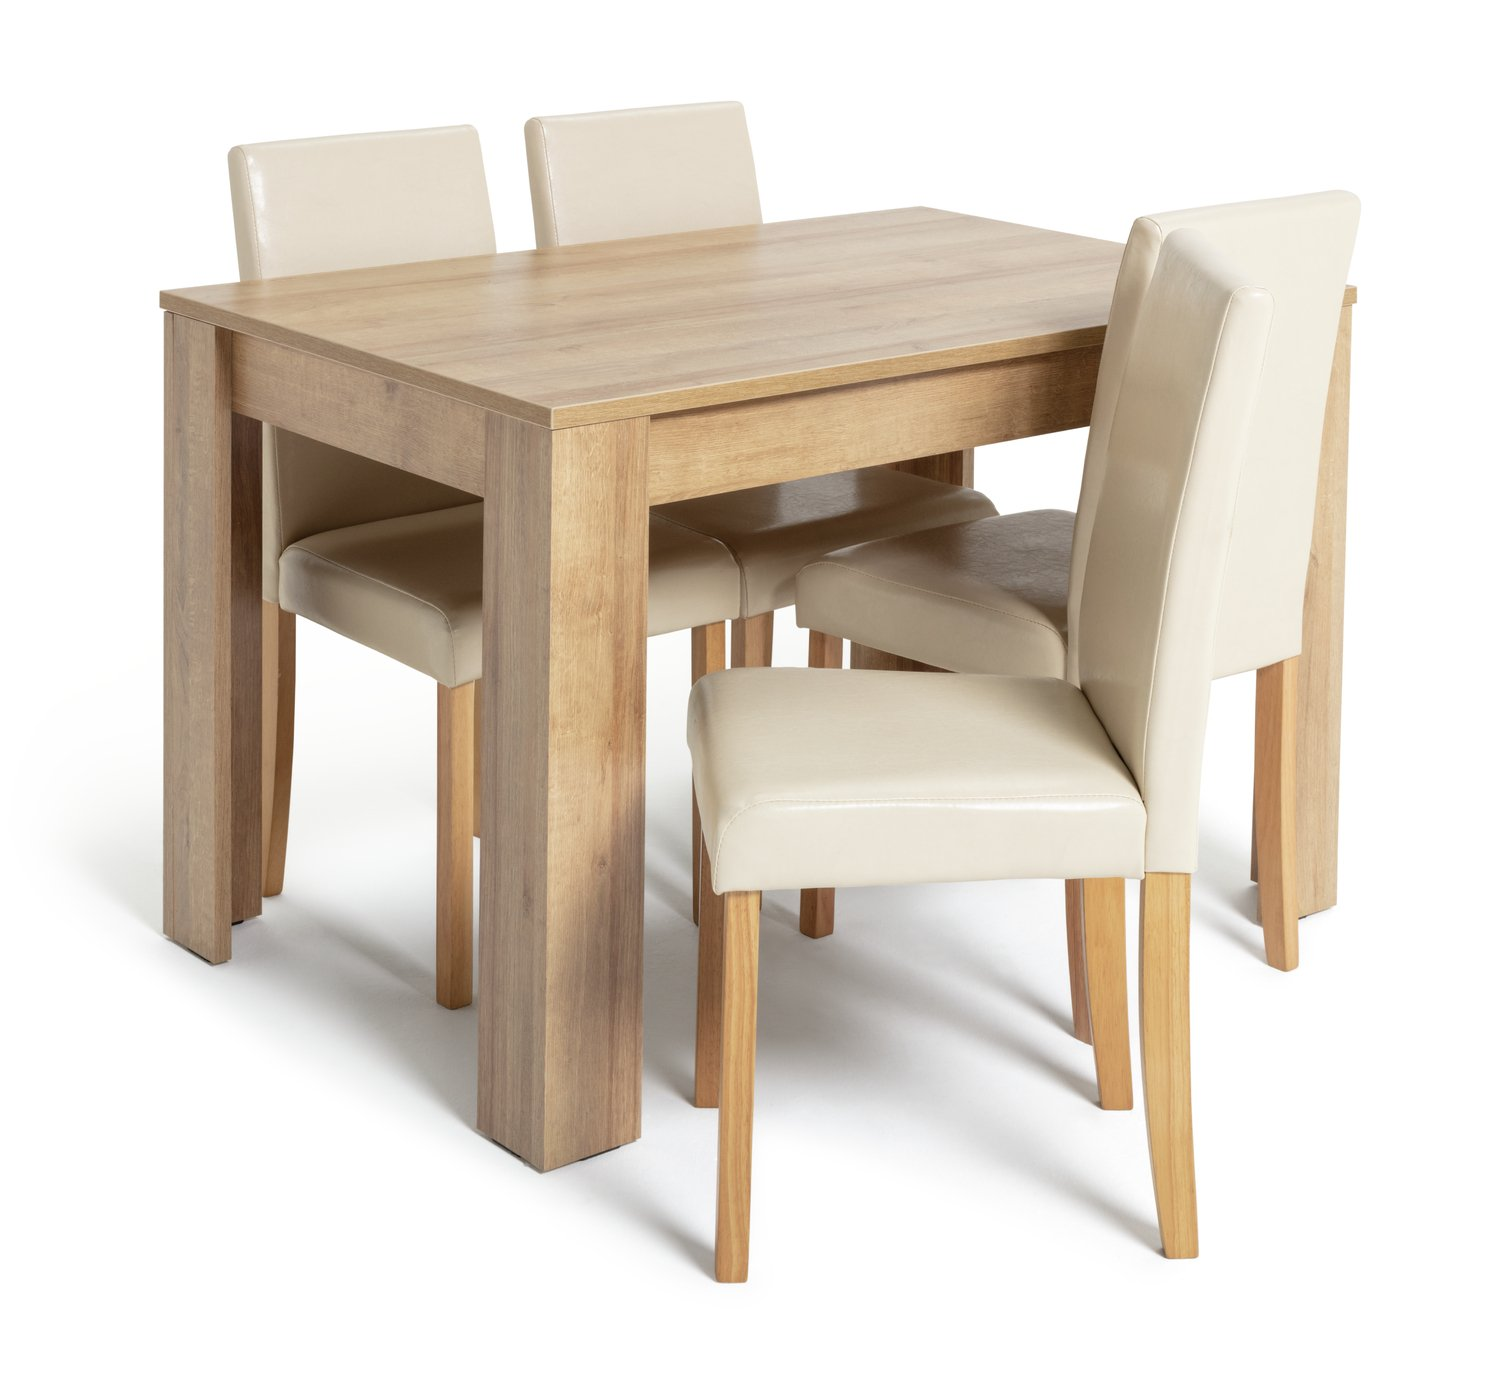 Argos Home Miami Oak Effect Dining Table & 4 Cream Chairs